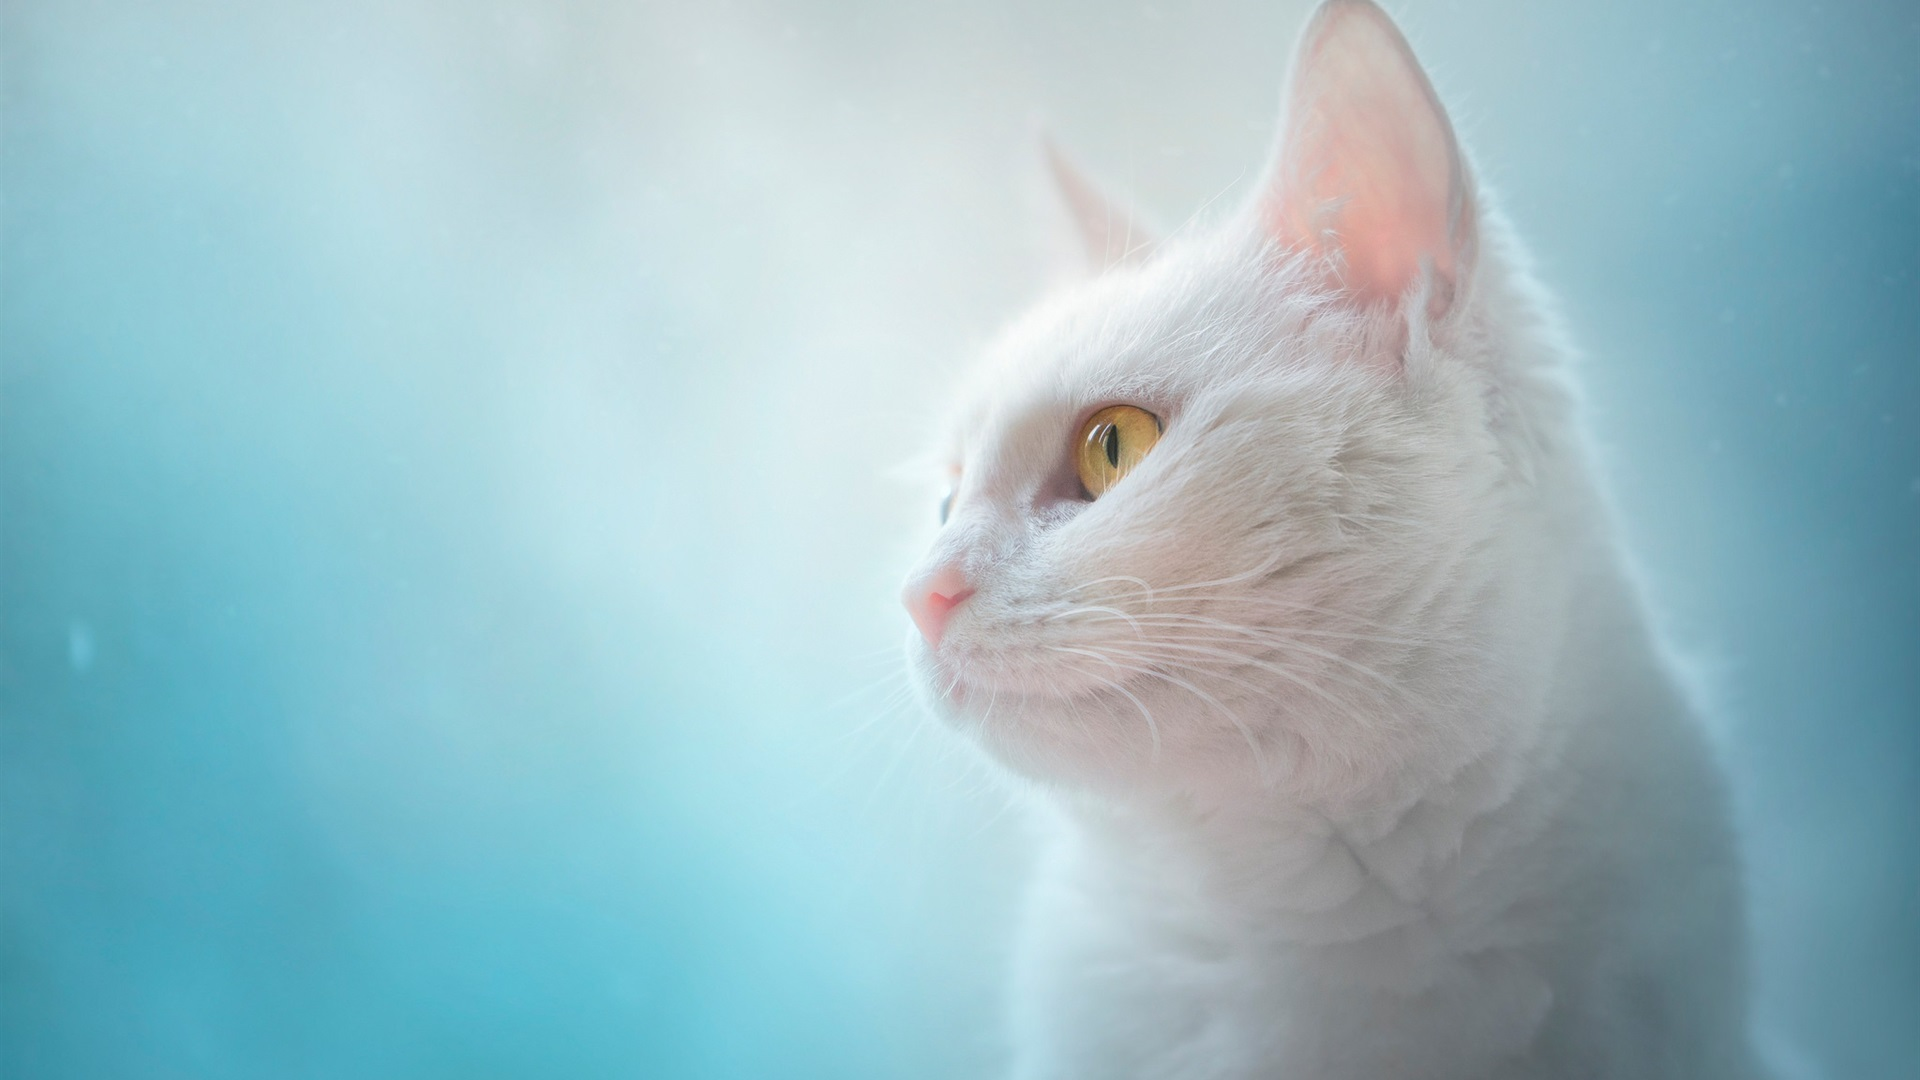 Wallpaper White cat, yellow eyes, blue background ... White Kitten With Blue And Green Eyes